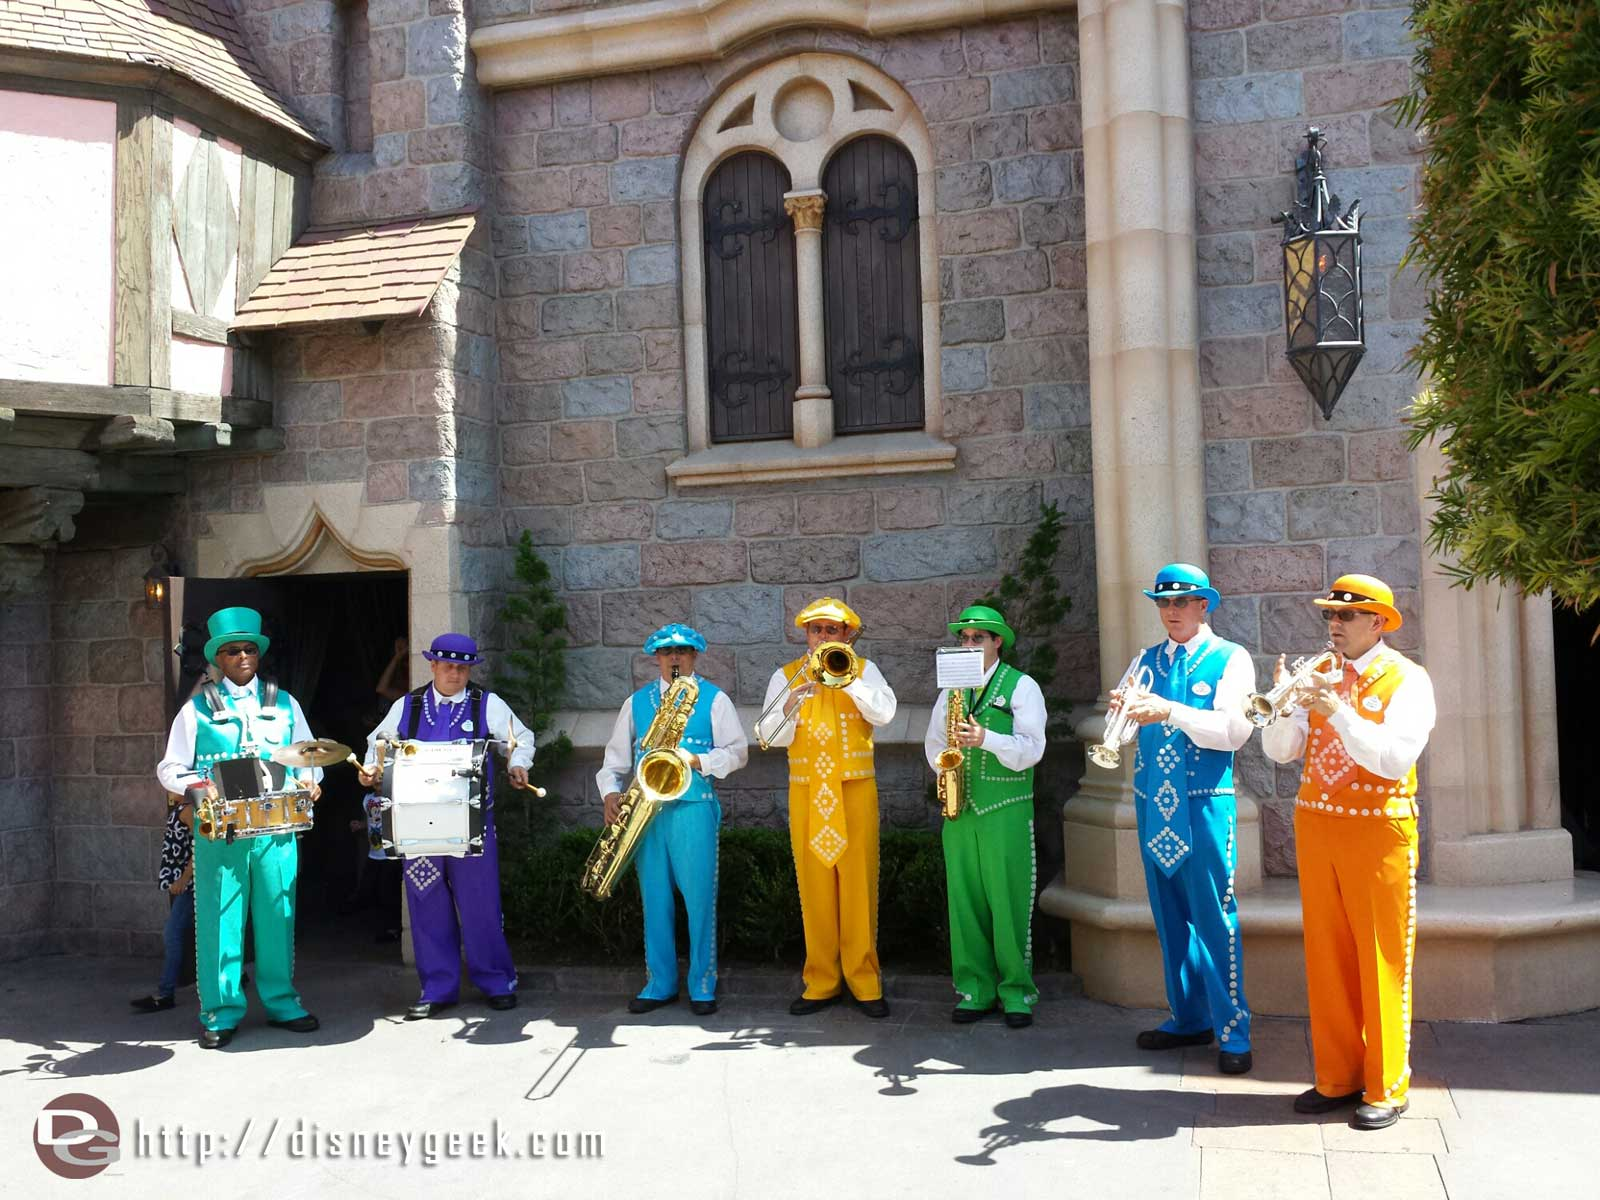 The Pearly Band performing in #Fantasyland #Disneyland